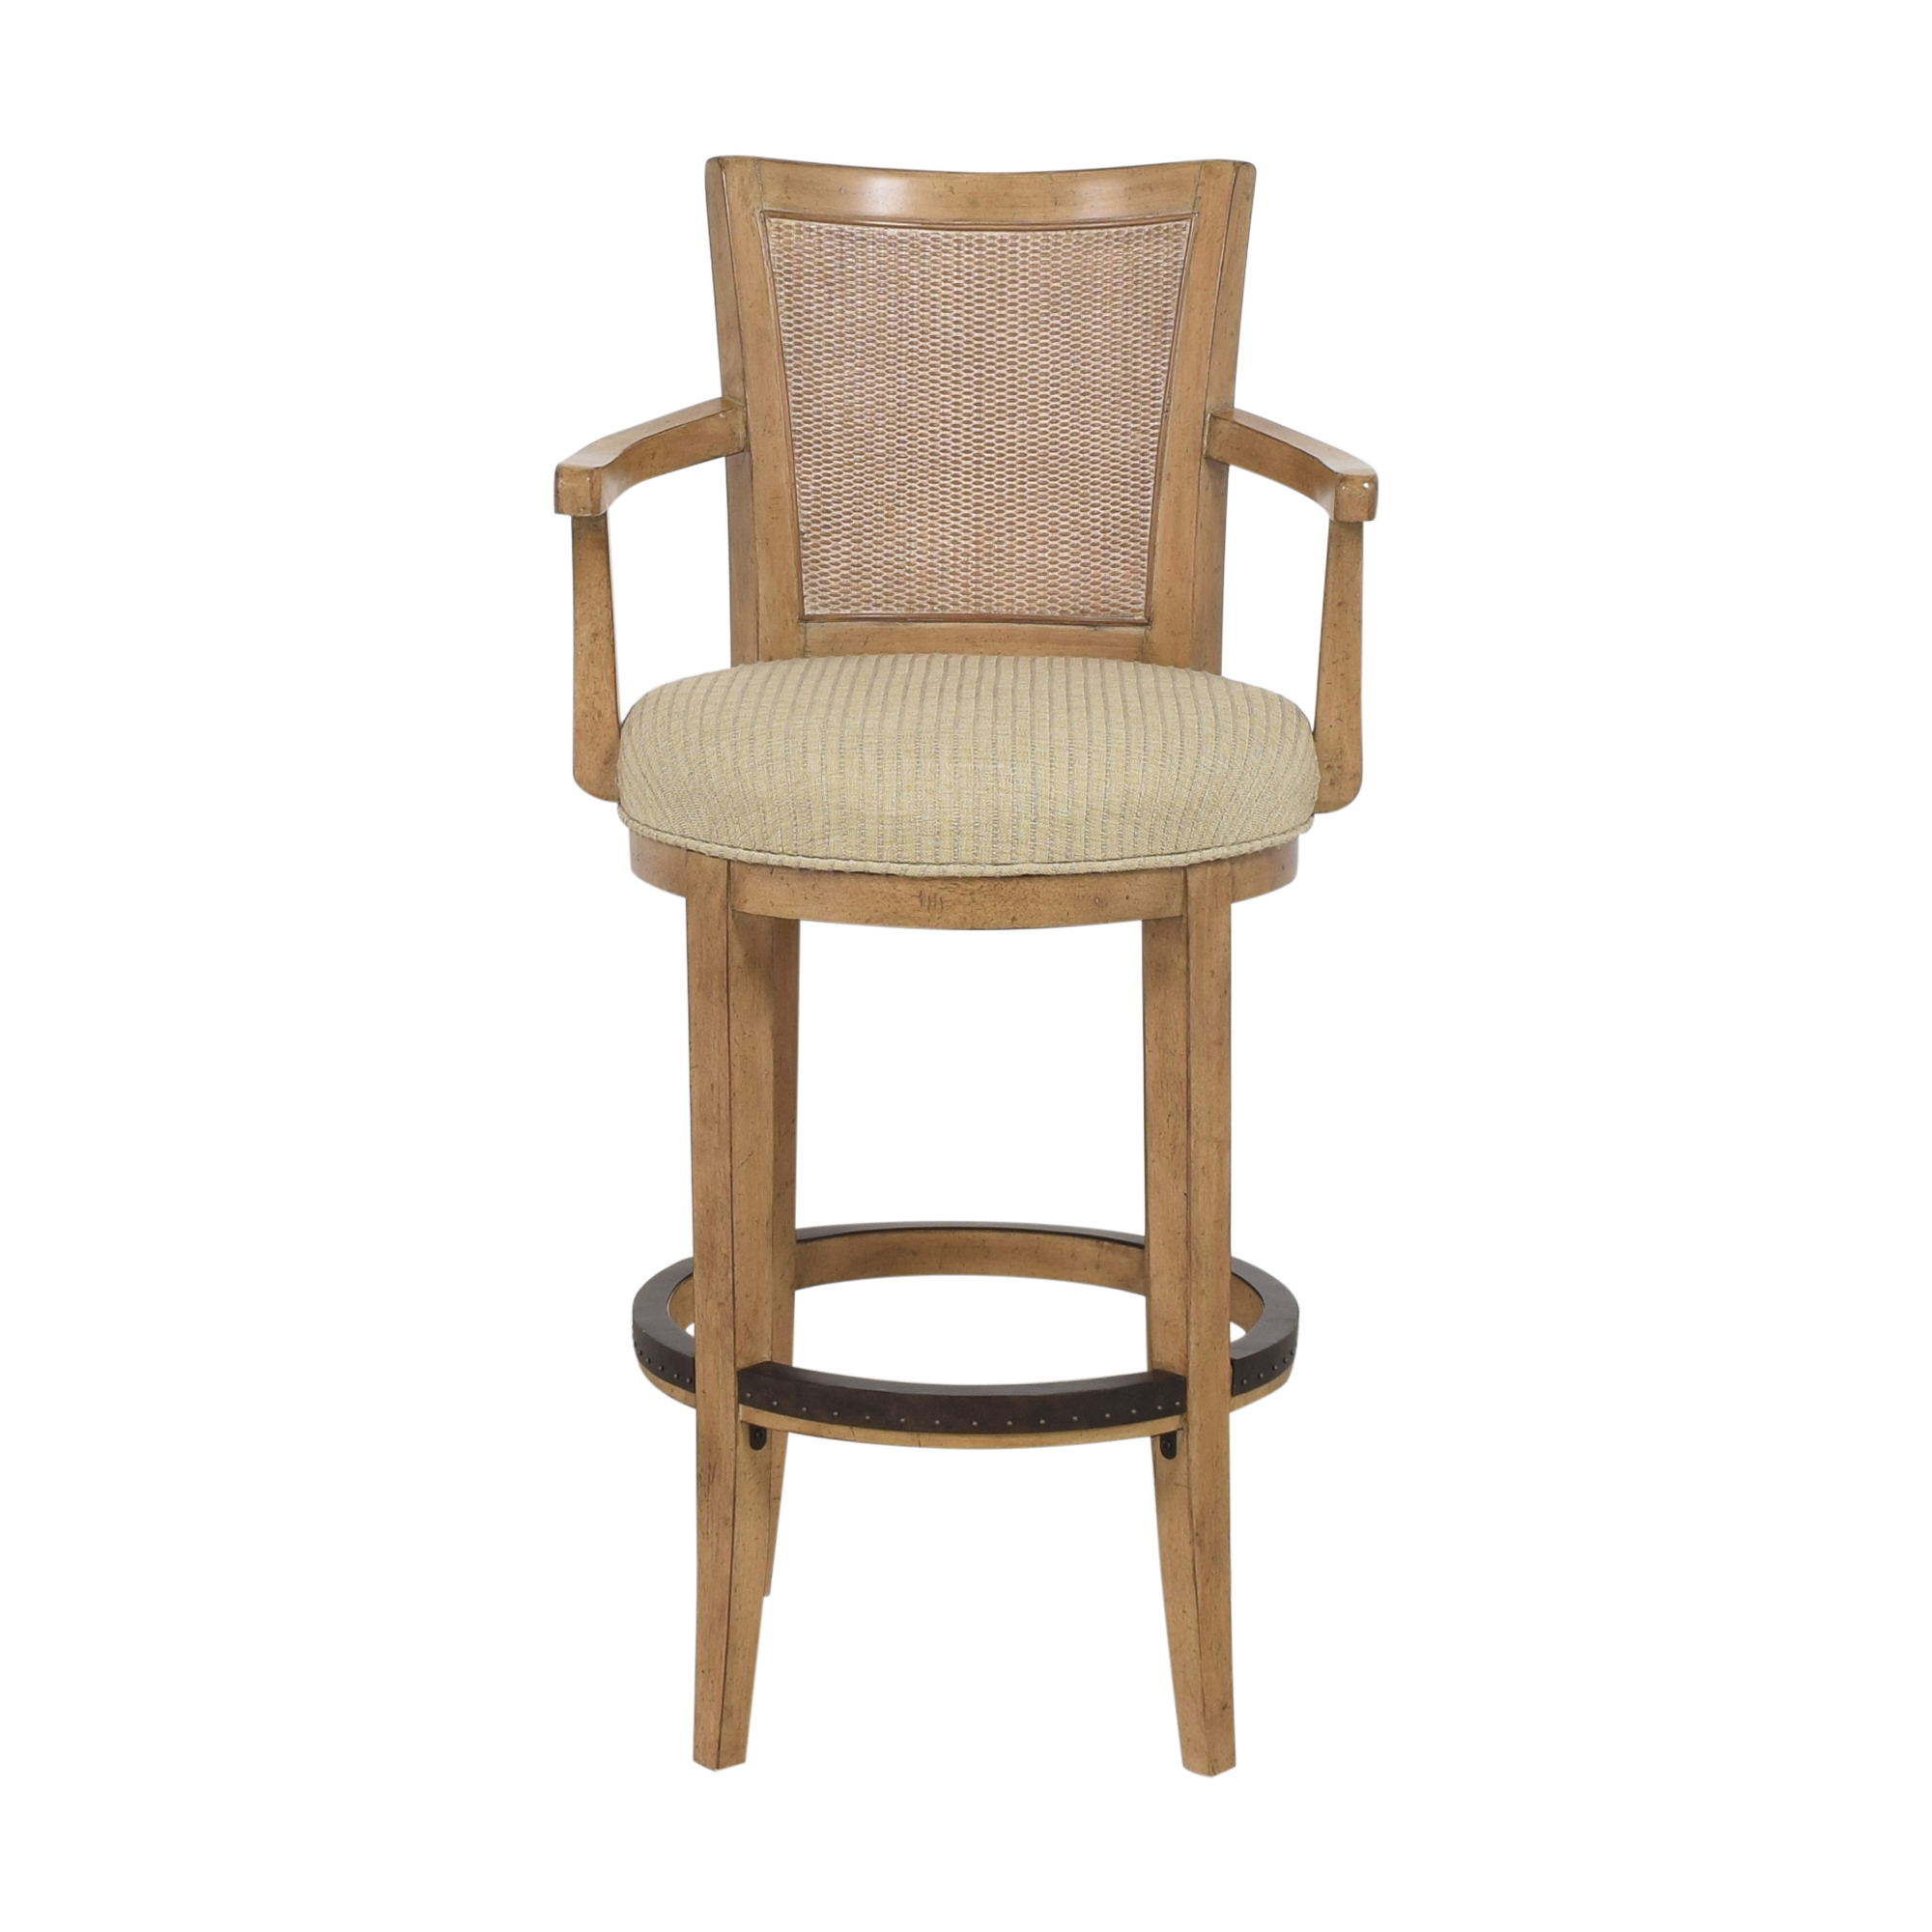 Lexington Furniture Lexington Furniture Custom Monterey Sands Carmel Bar Stool nyc